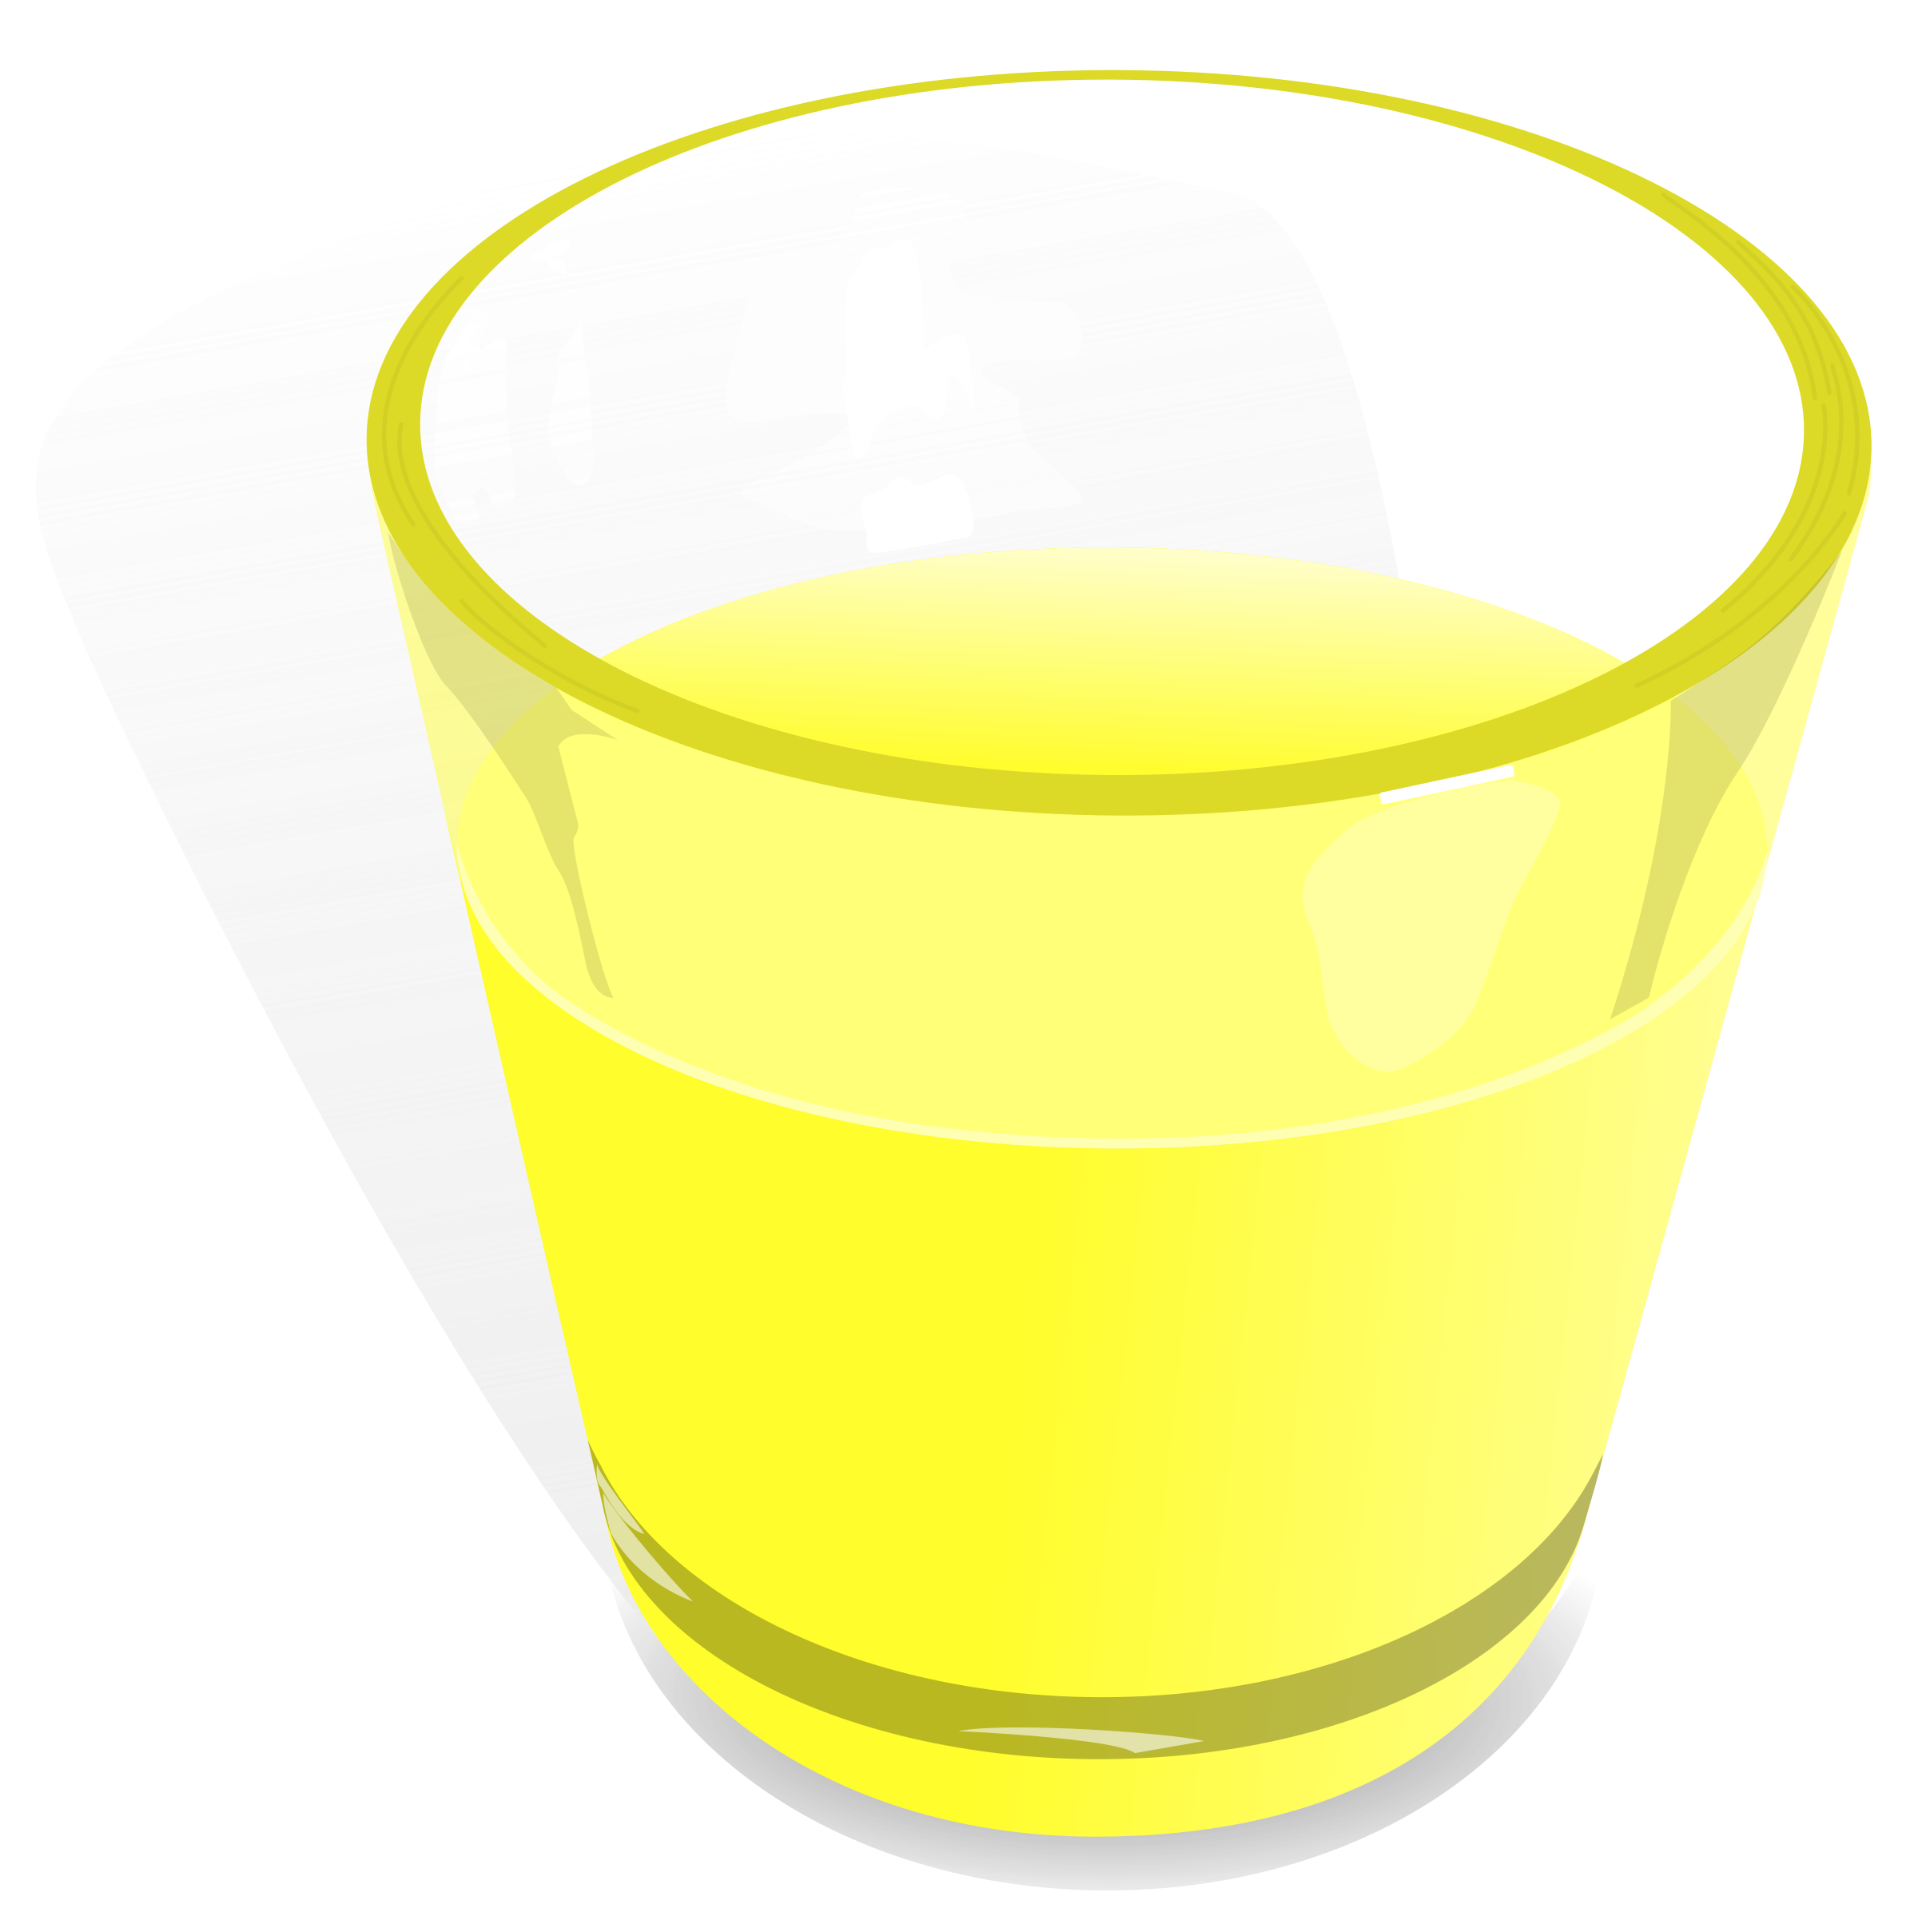 Glass (cup) by flomar